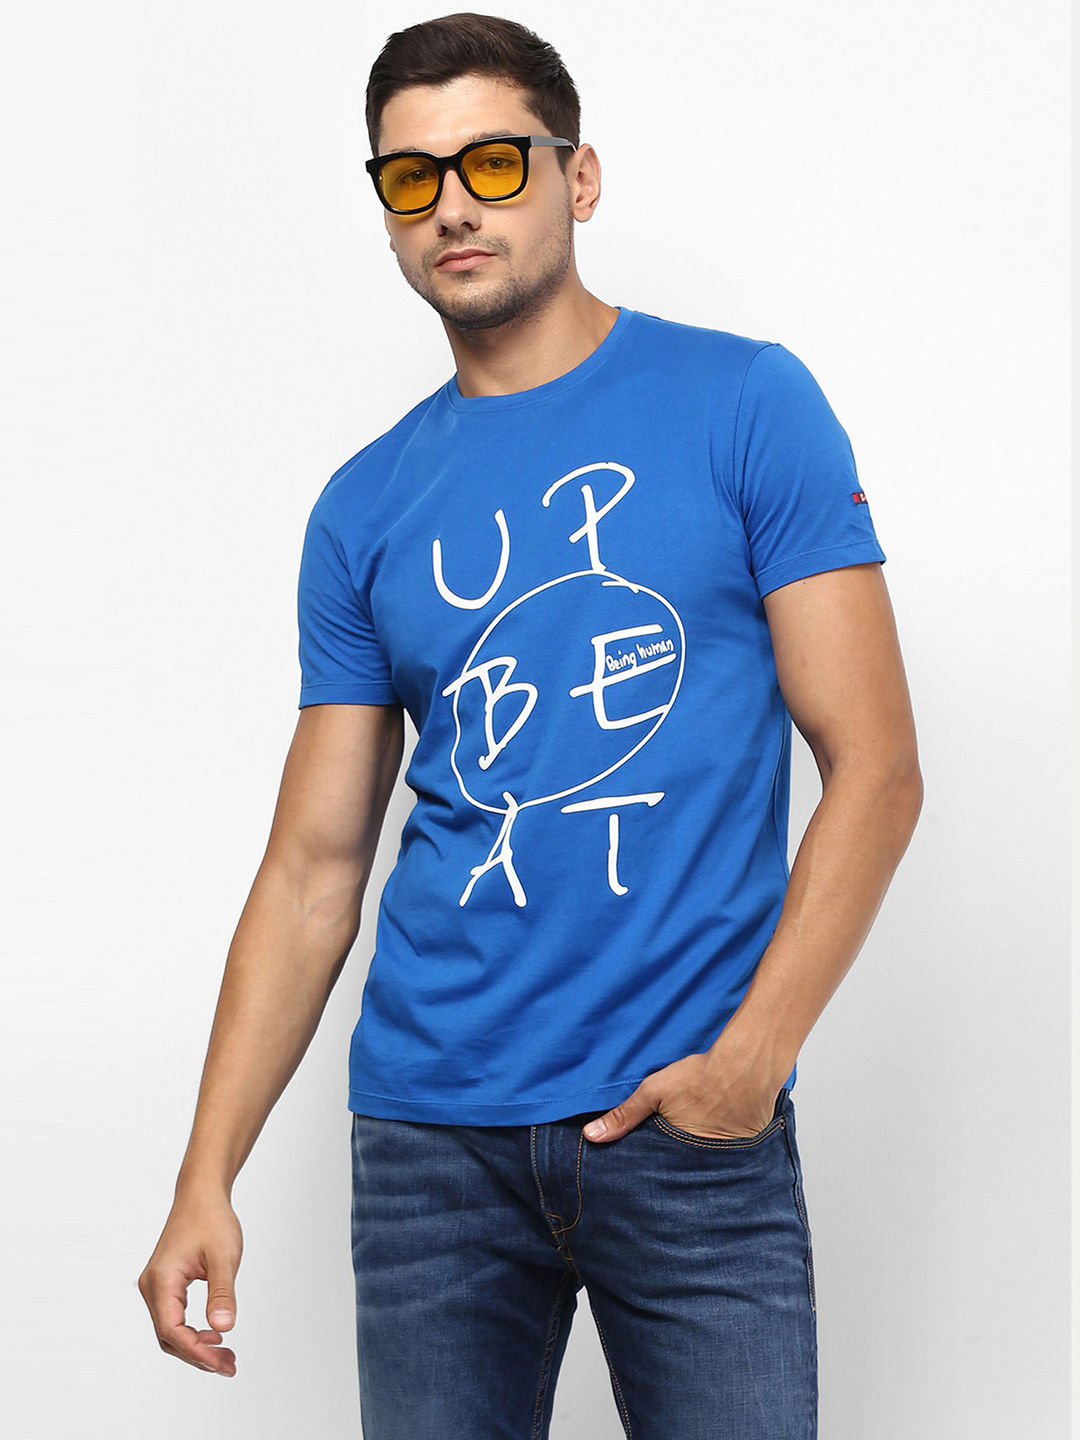 INK BLUE PRINTED T-SHIRT